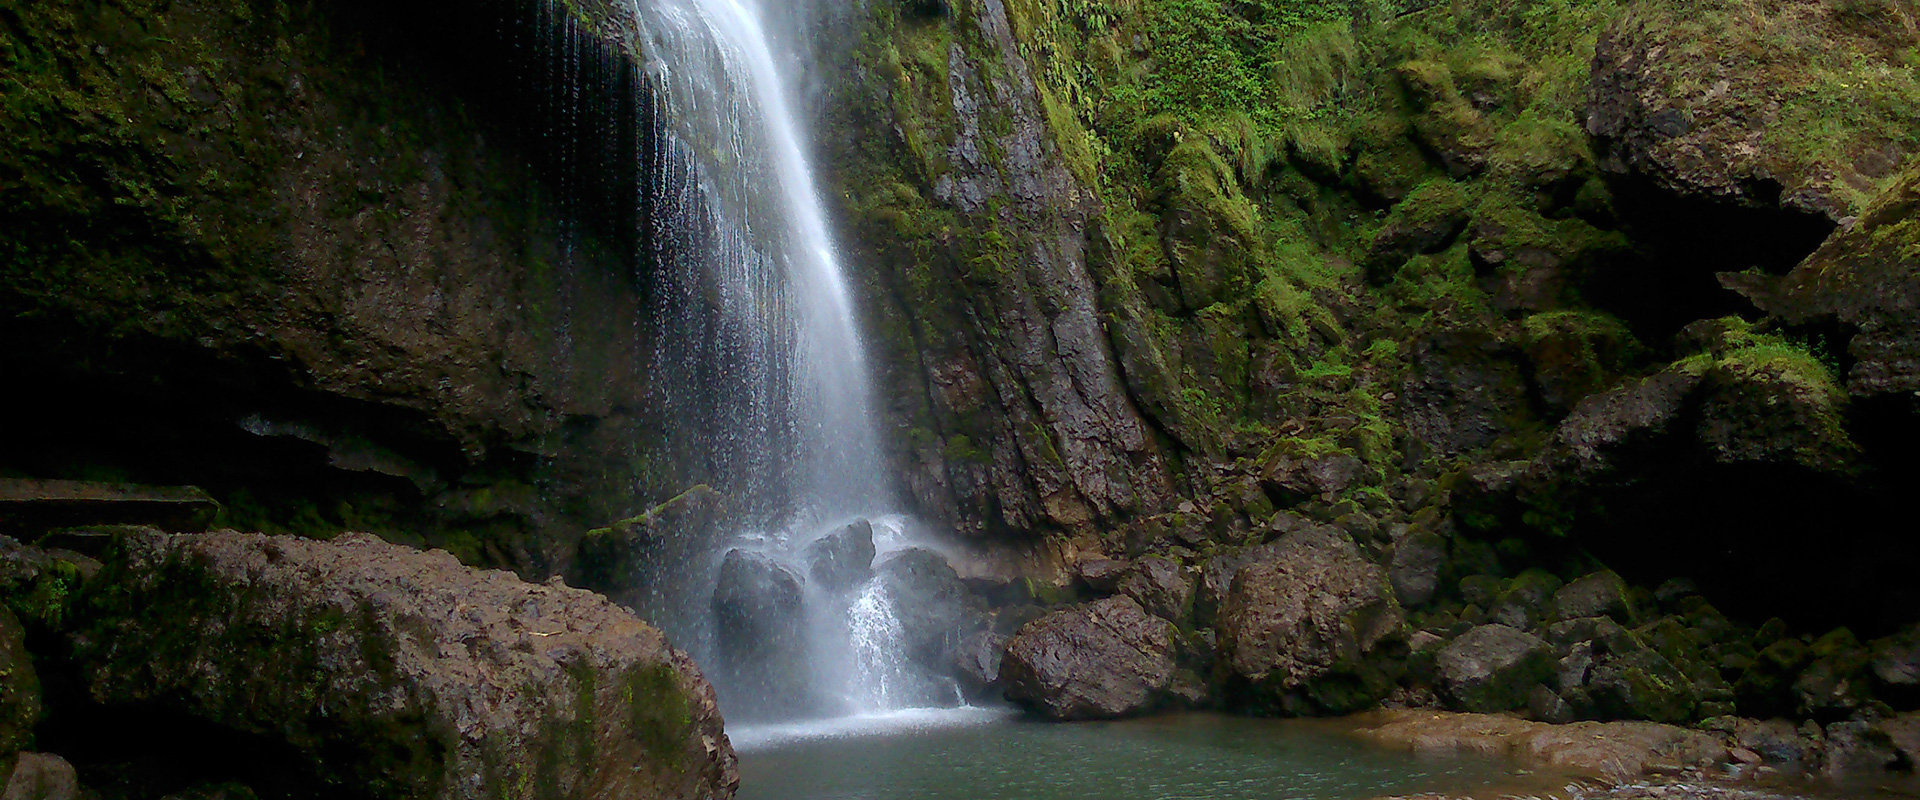 Giron Waterfalls